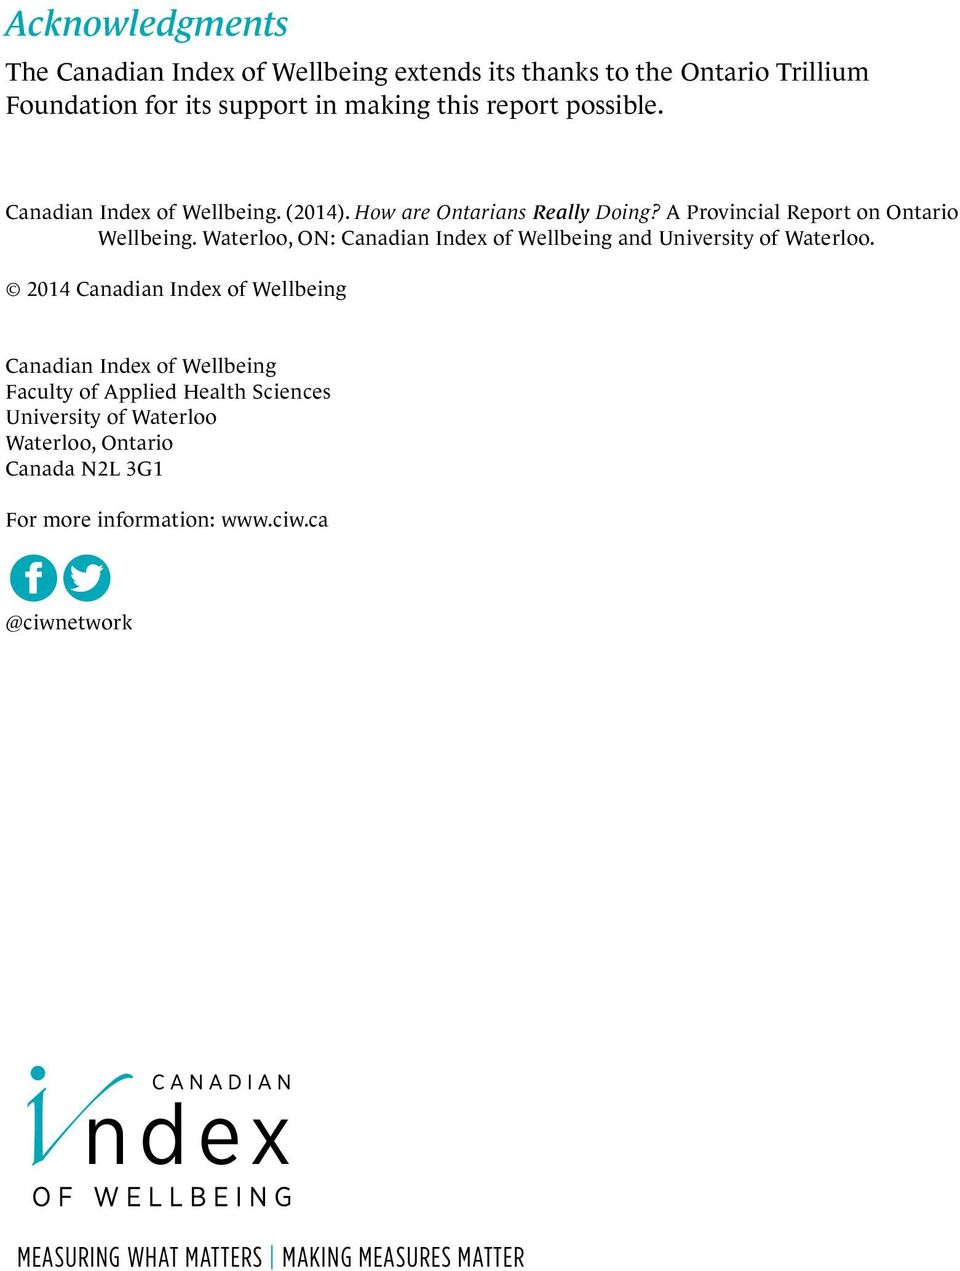 Waterloo, ON: Canadian Index of Wellbeing and University of Waterloo.